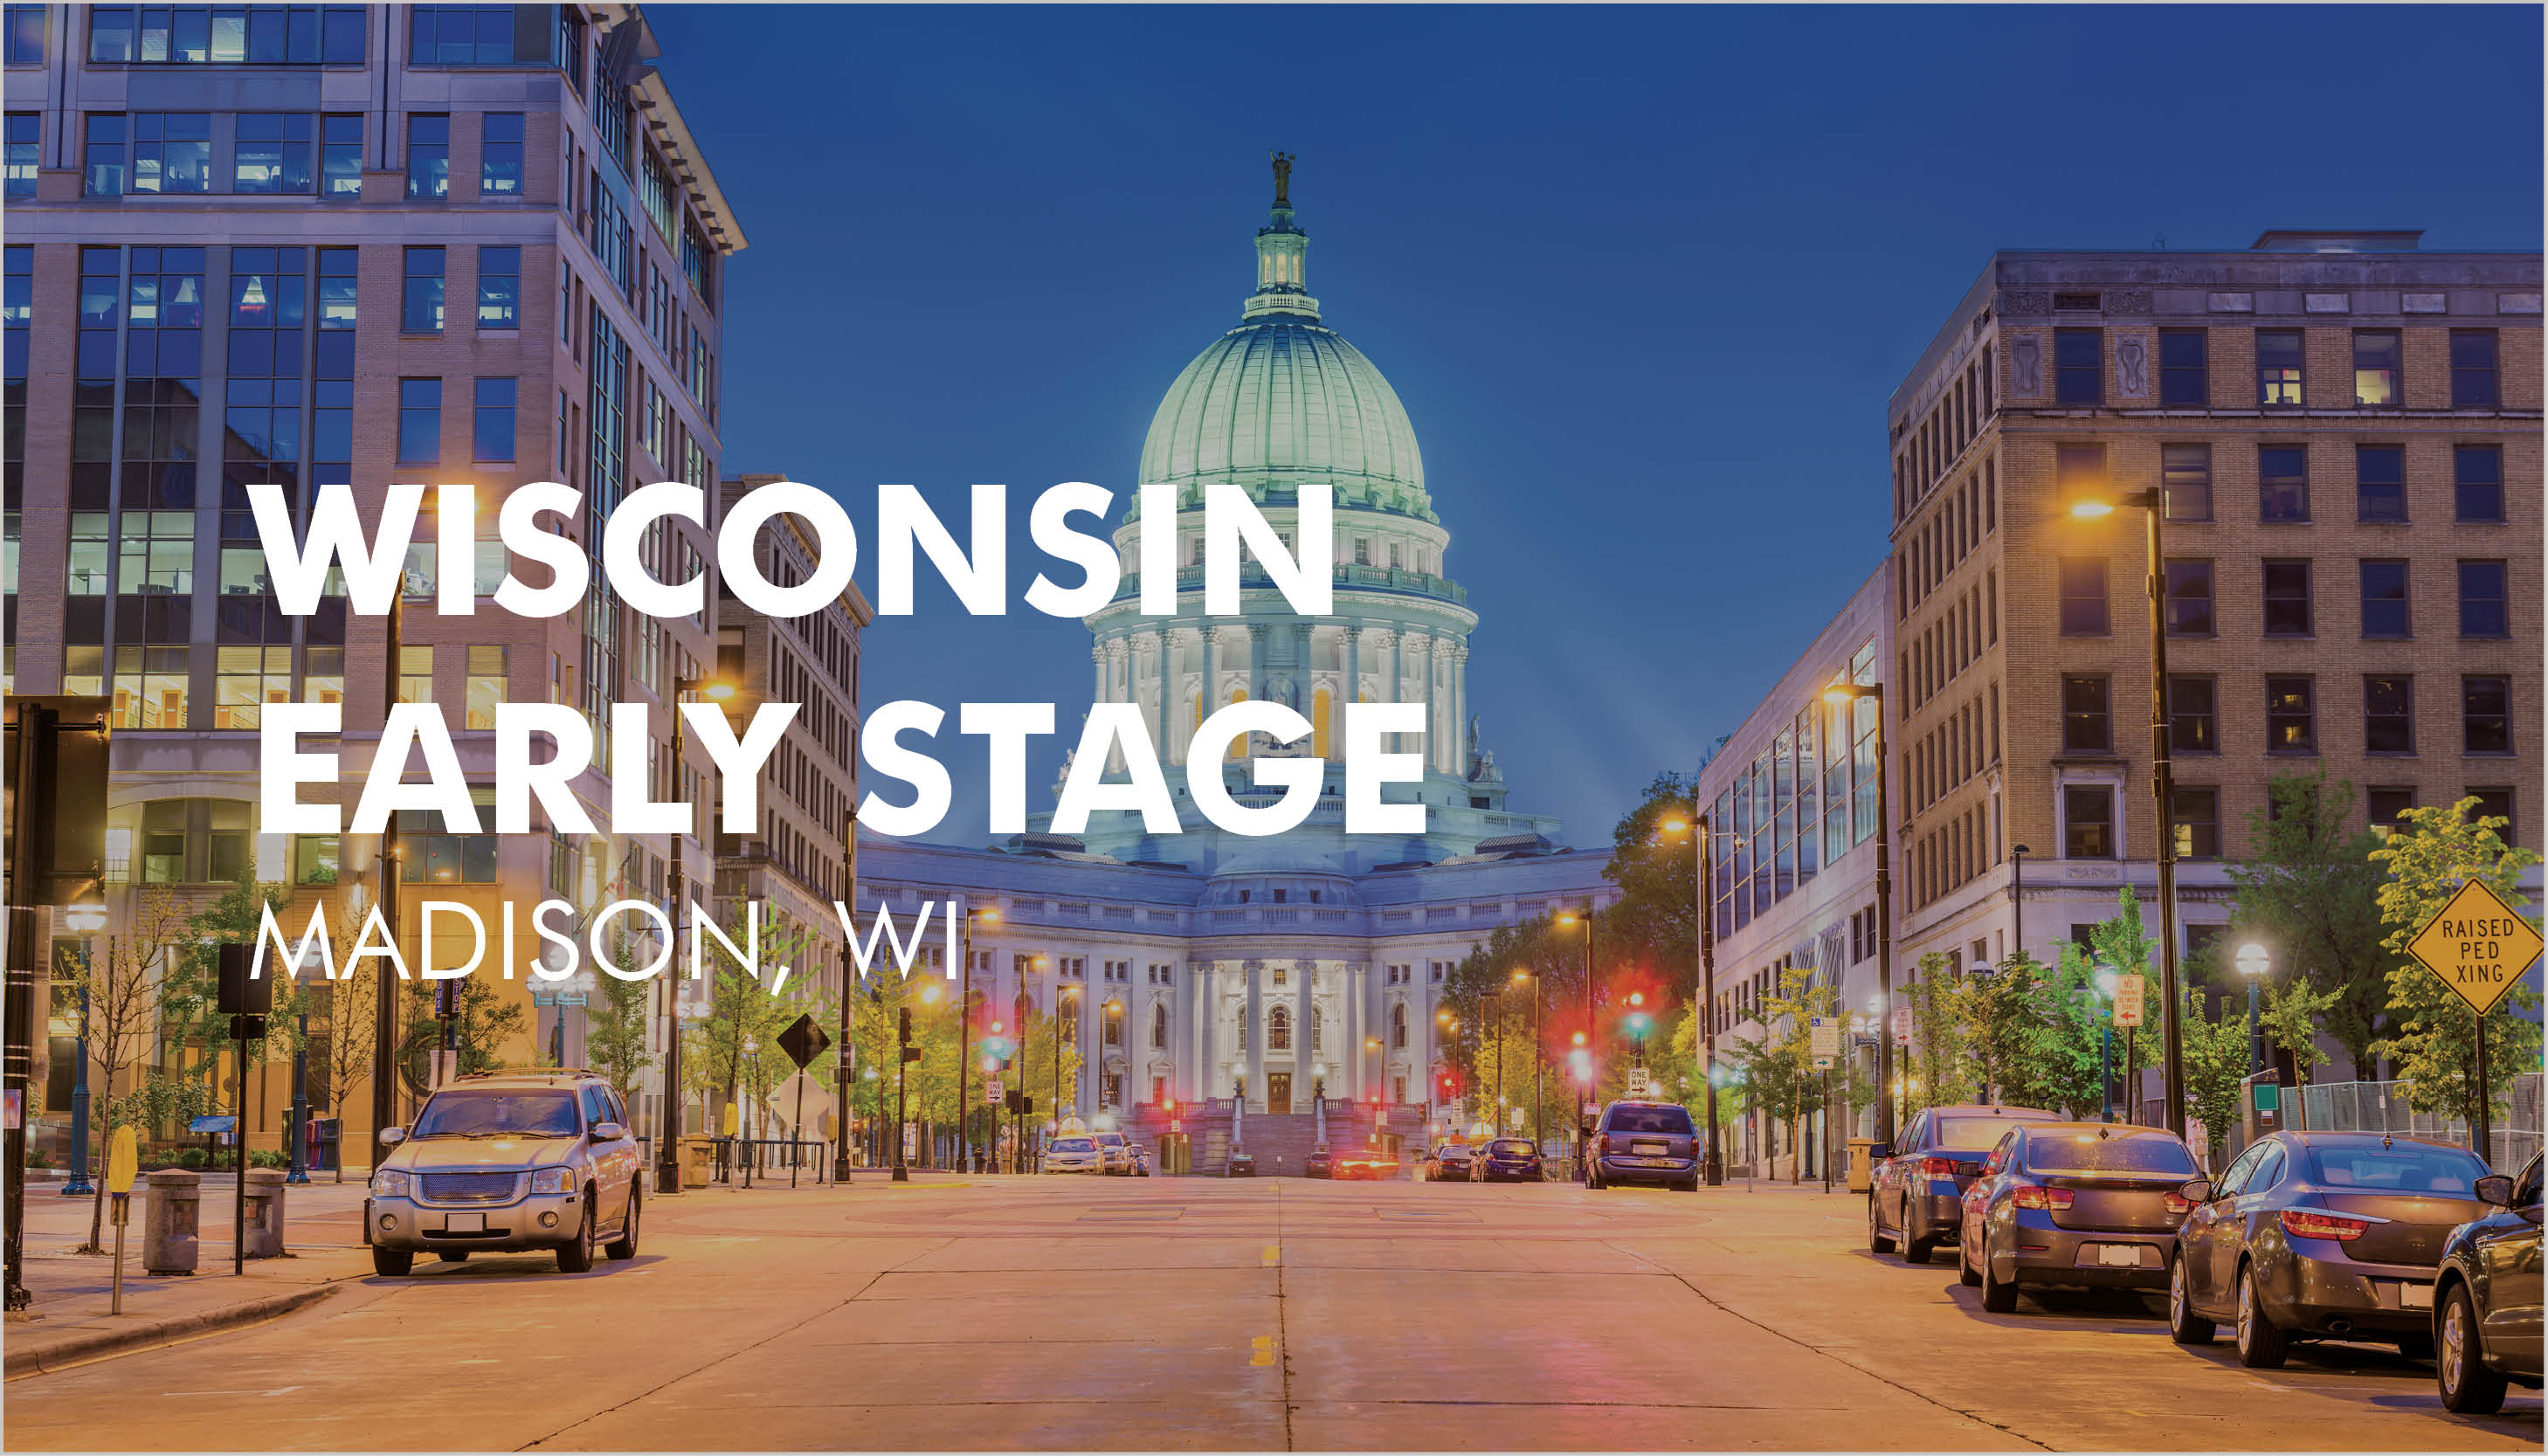 Wisconsin Early Stage Symposium 2019 Image